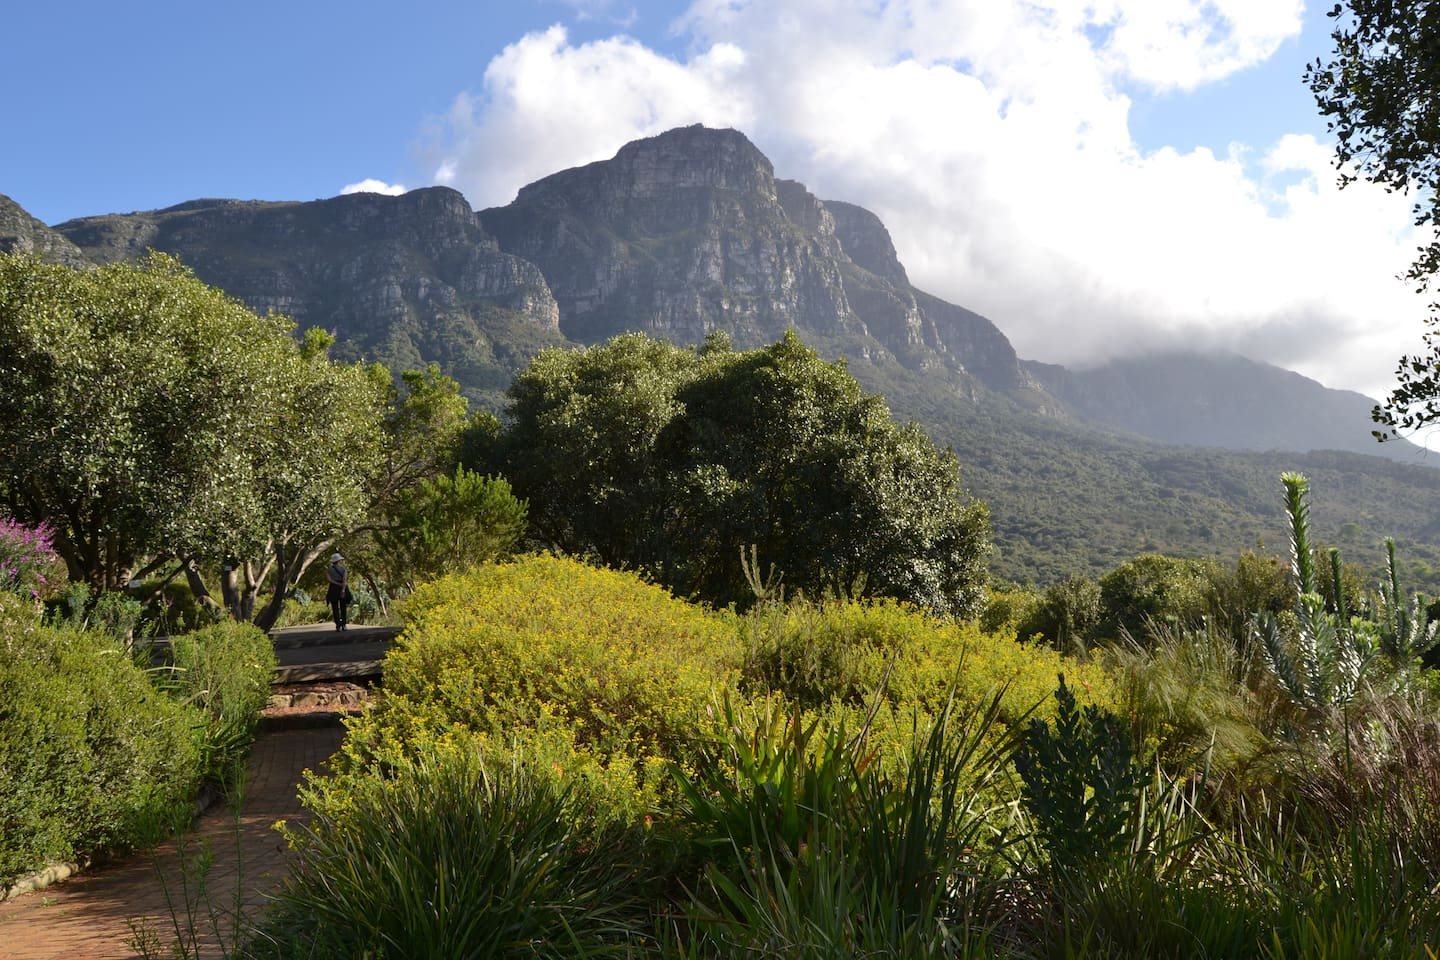 Kirstenbosch Botanical Gardens, within walking distance of the lodge. The Kistenbosch Tea Room is a popular daytime restaurant, serving a variety of delicious meals.